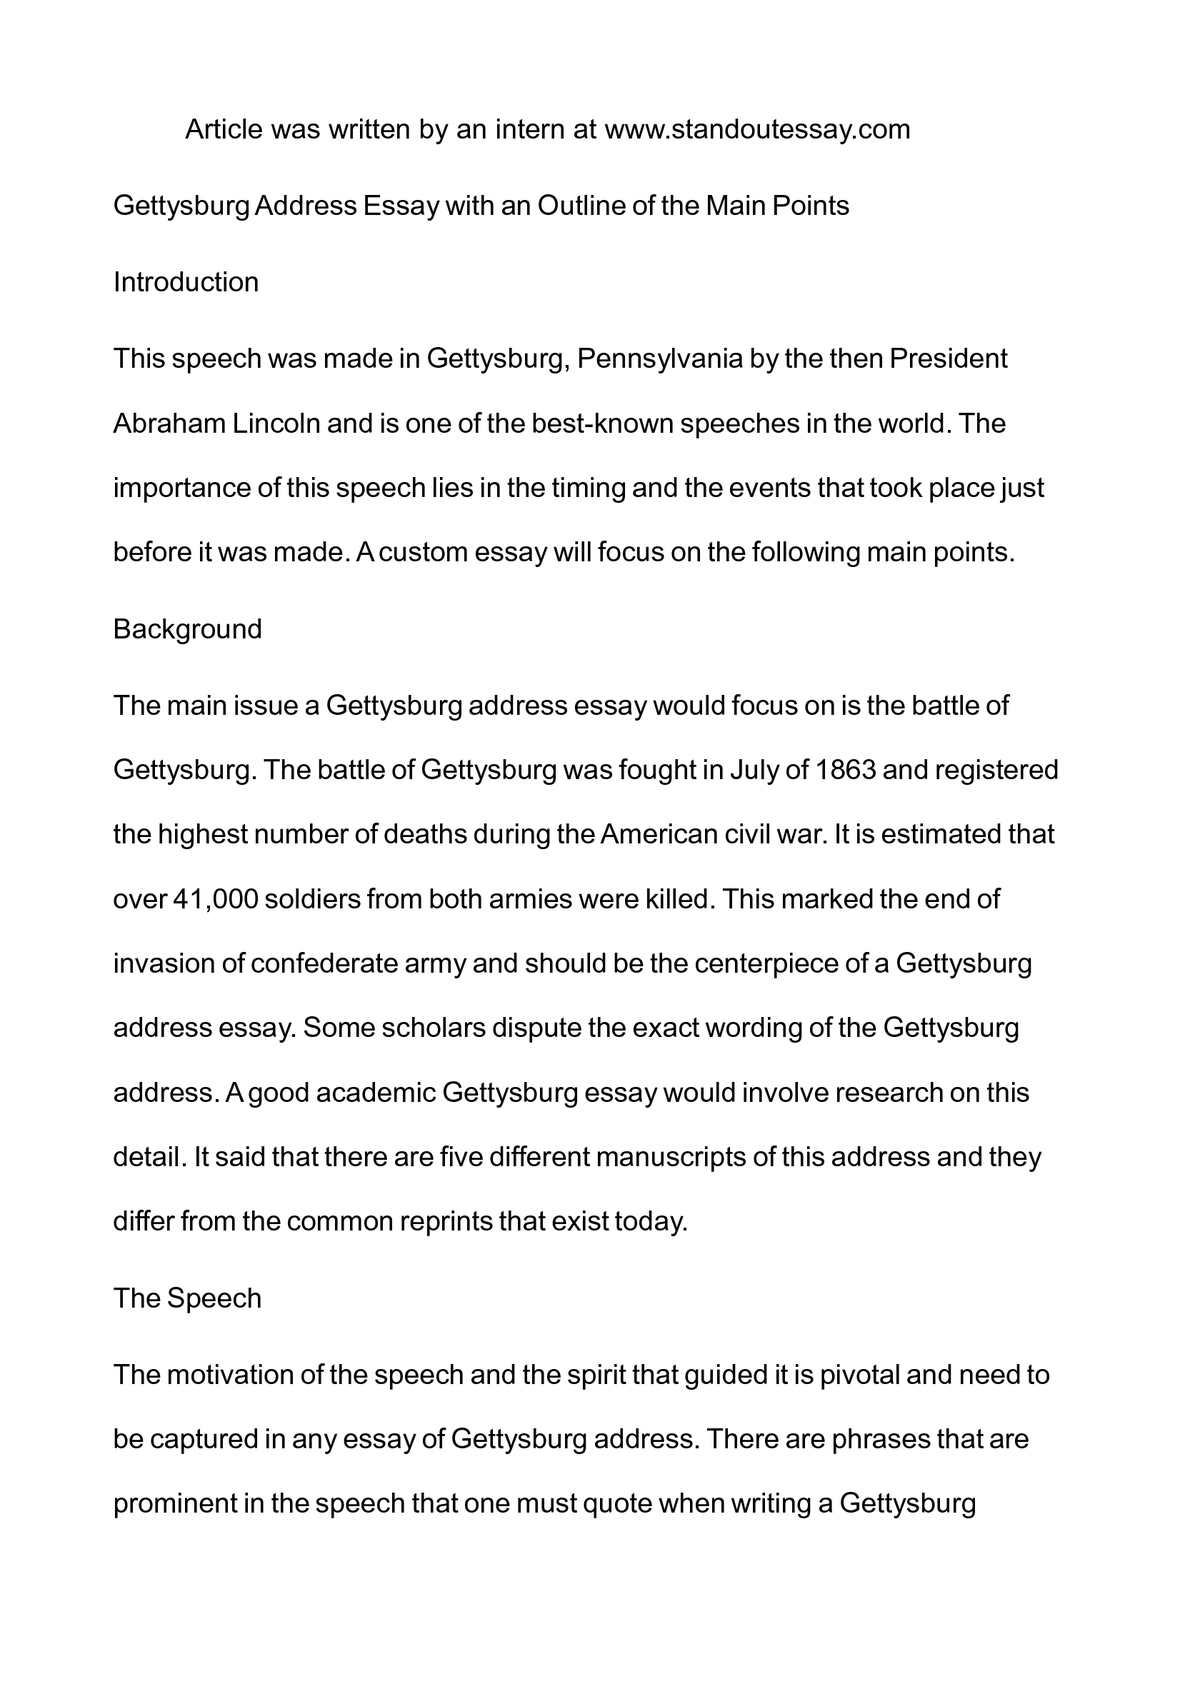 was the civil war inevitable essays civil right movement essay  gettysburg address essay calam atilde copy o gettysburg address essay an calamatildecopyo gettysburg address essay an